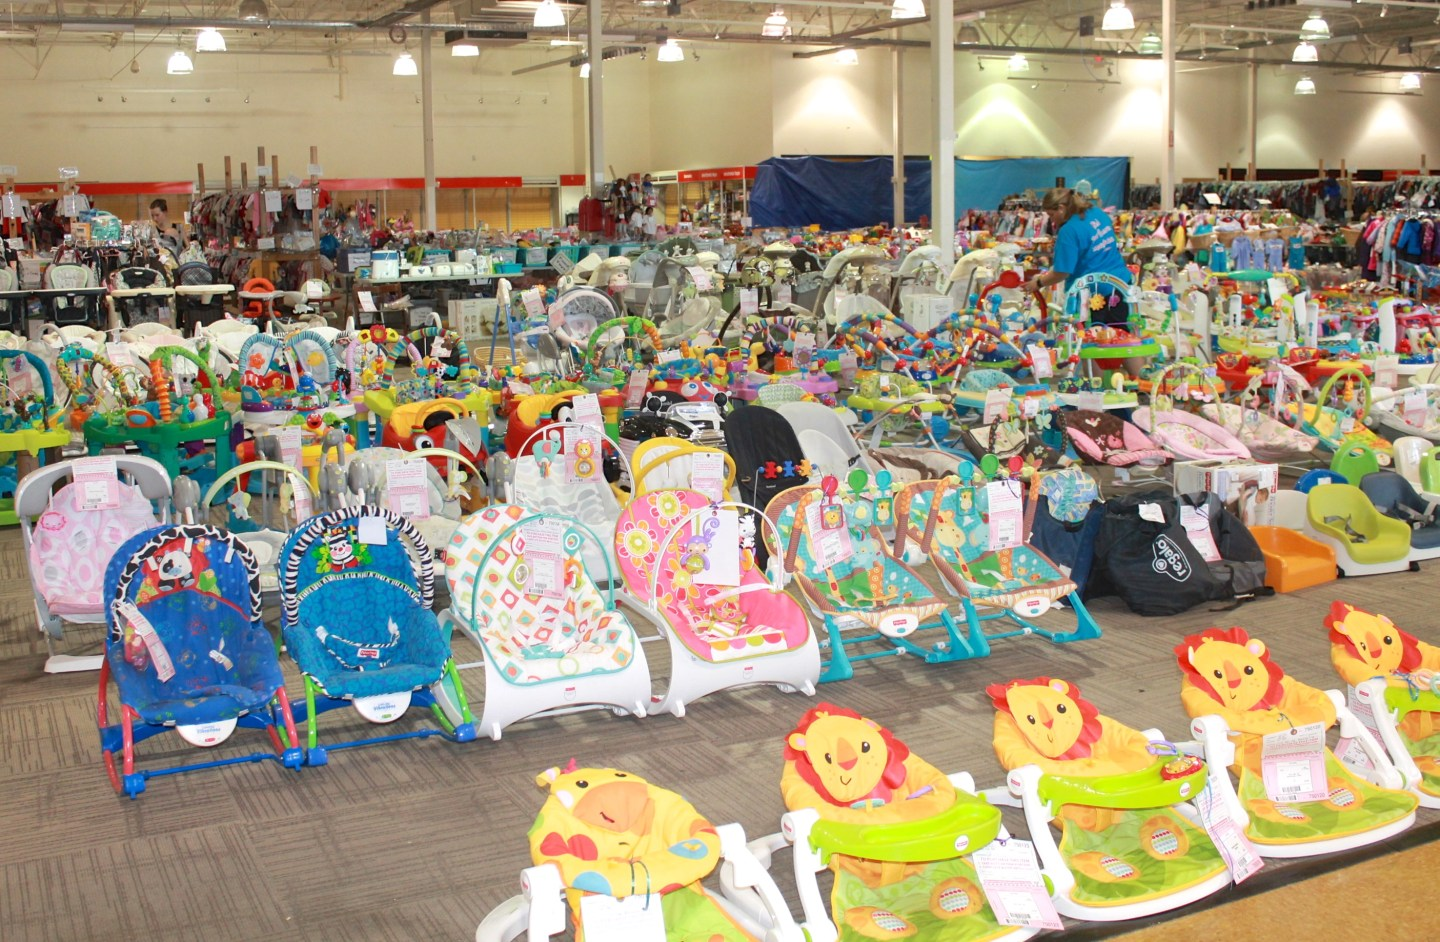 WeeTrade Children's Consignment Event | What To Expect